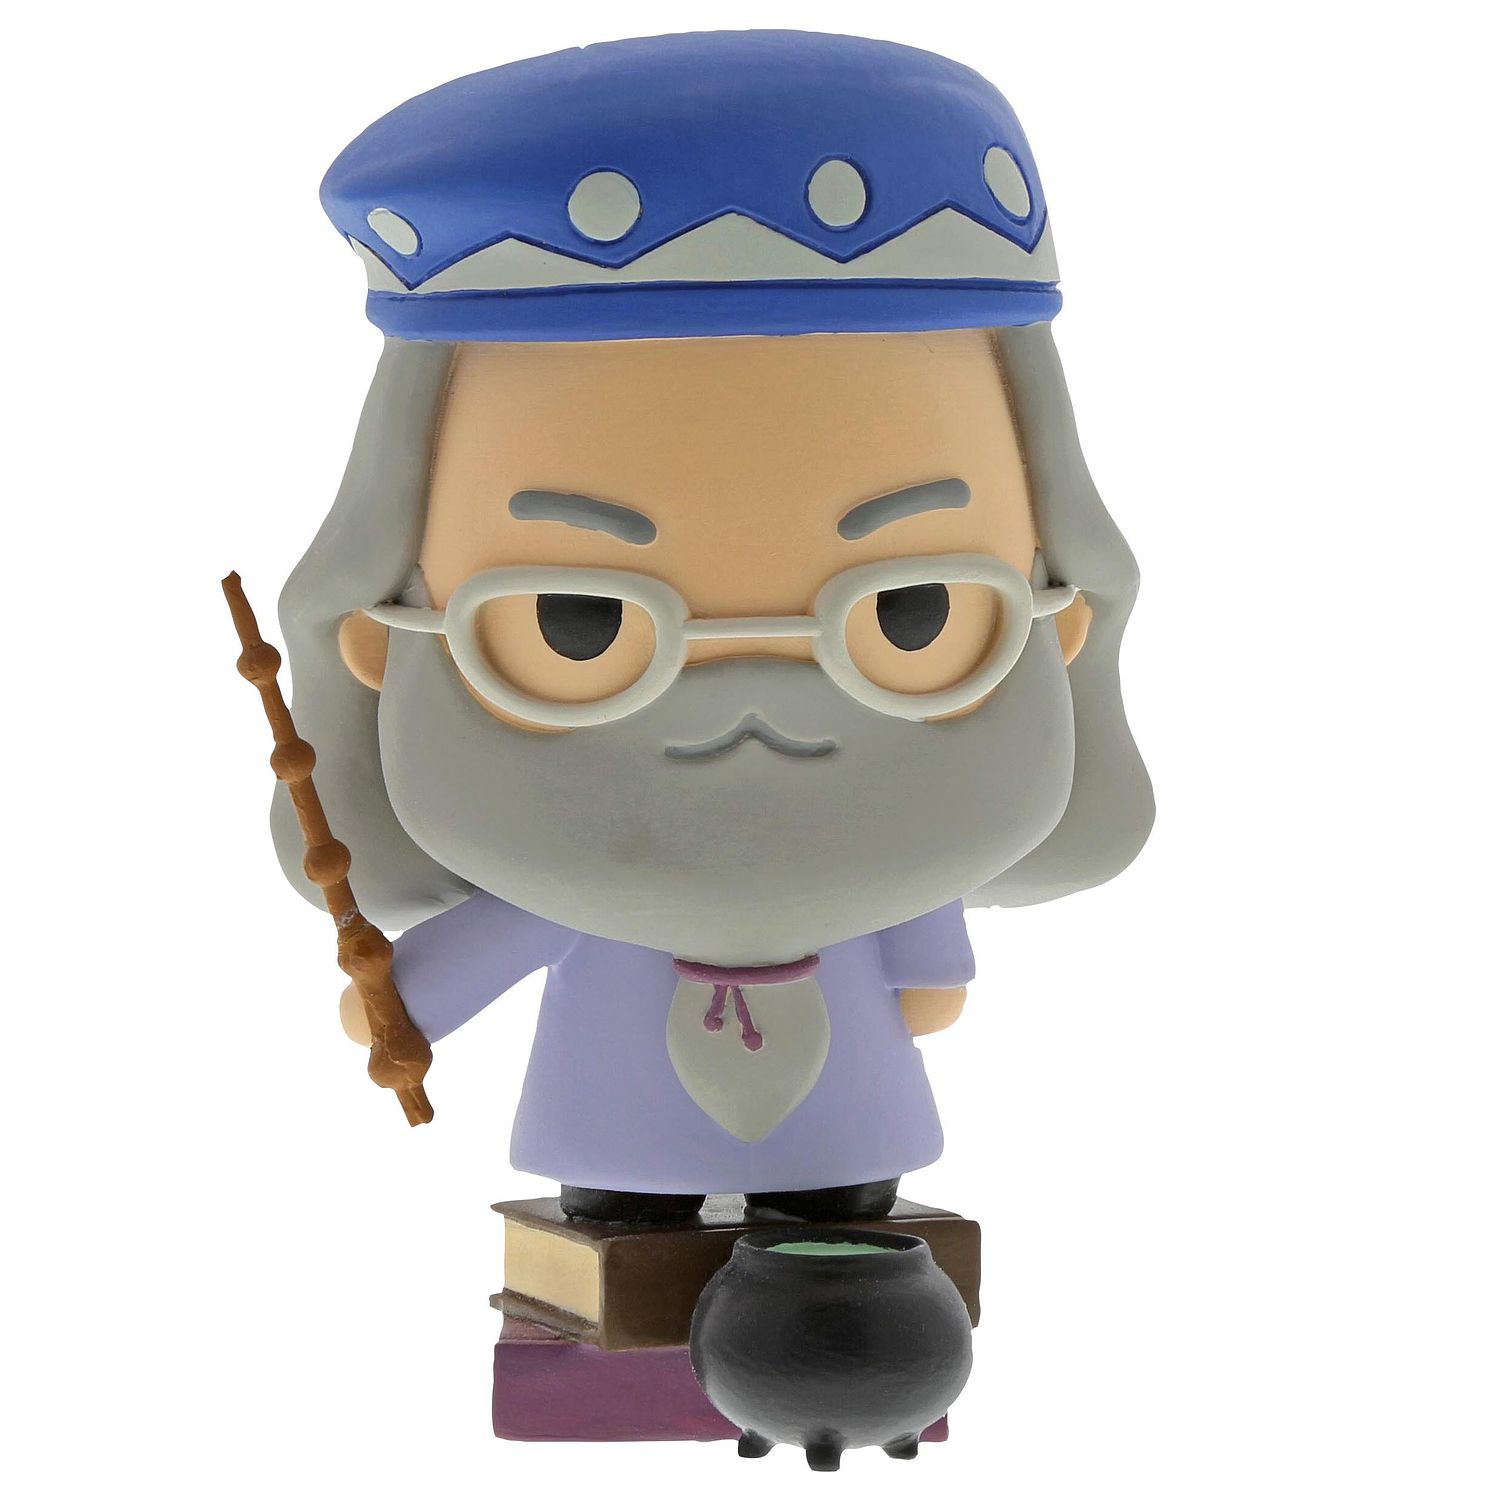 Harry Potter Chibi Dumbledore Figurine - Product number 1754807